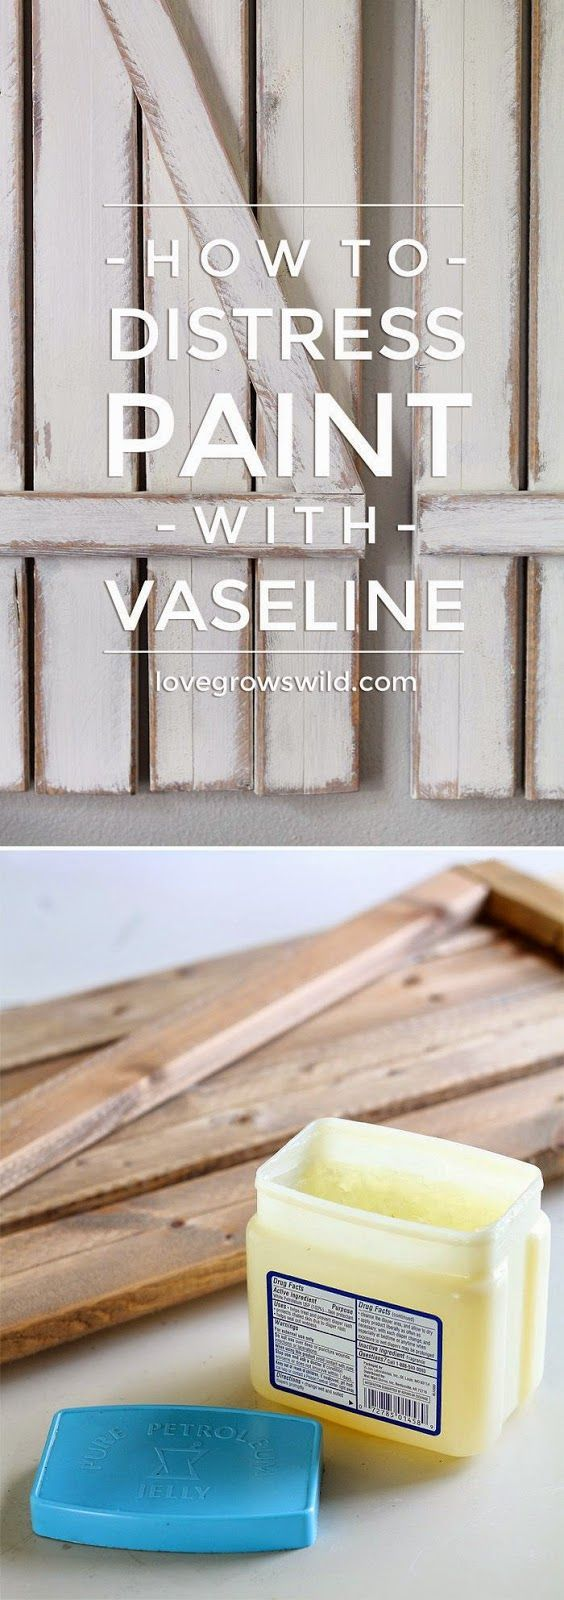 how to distress paint with vaseline renovierung haus bauen und holz. Black Bedroom Furniture Sets. Home Design Ideas